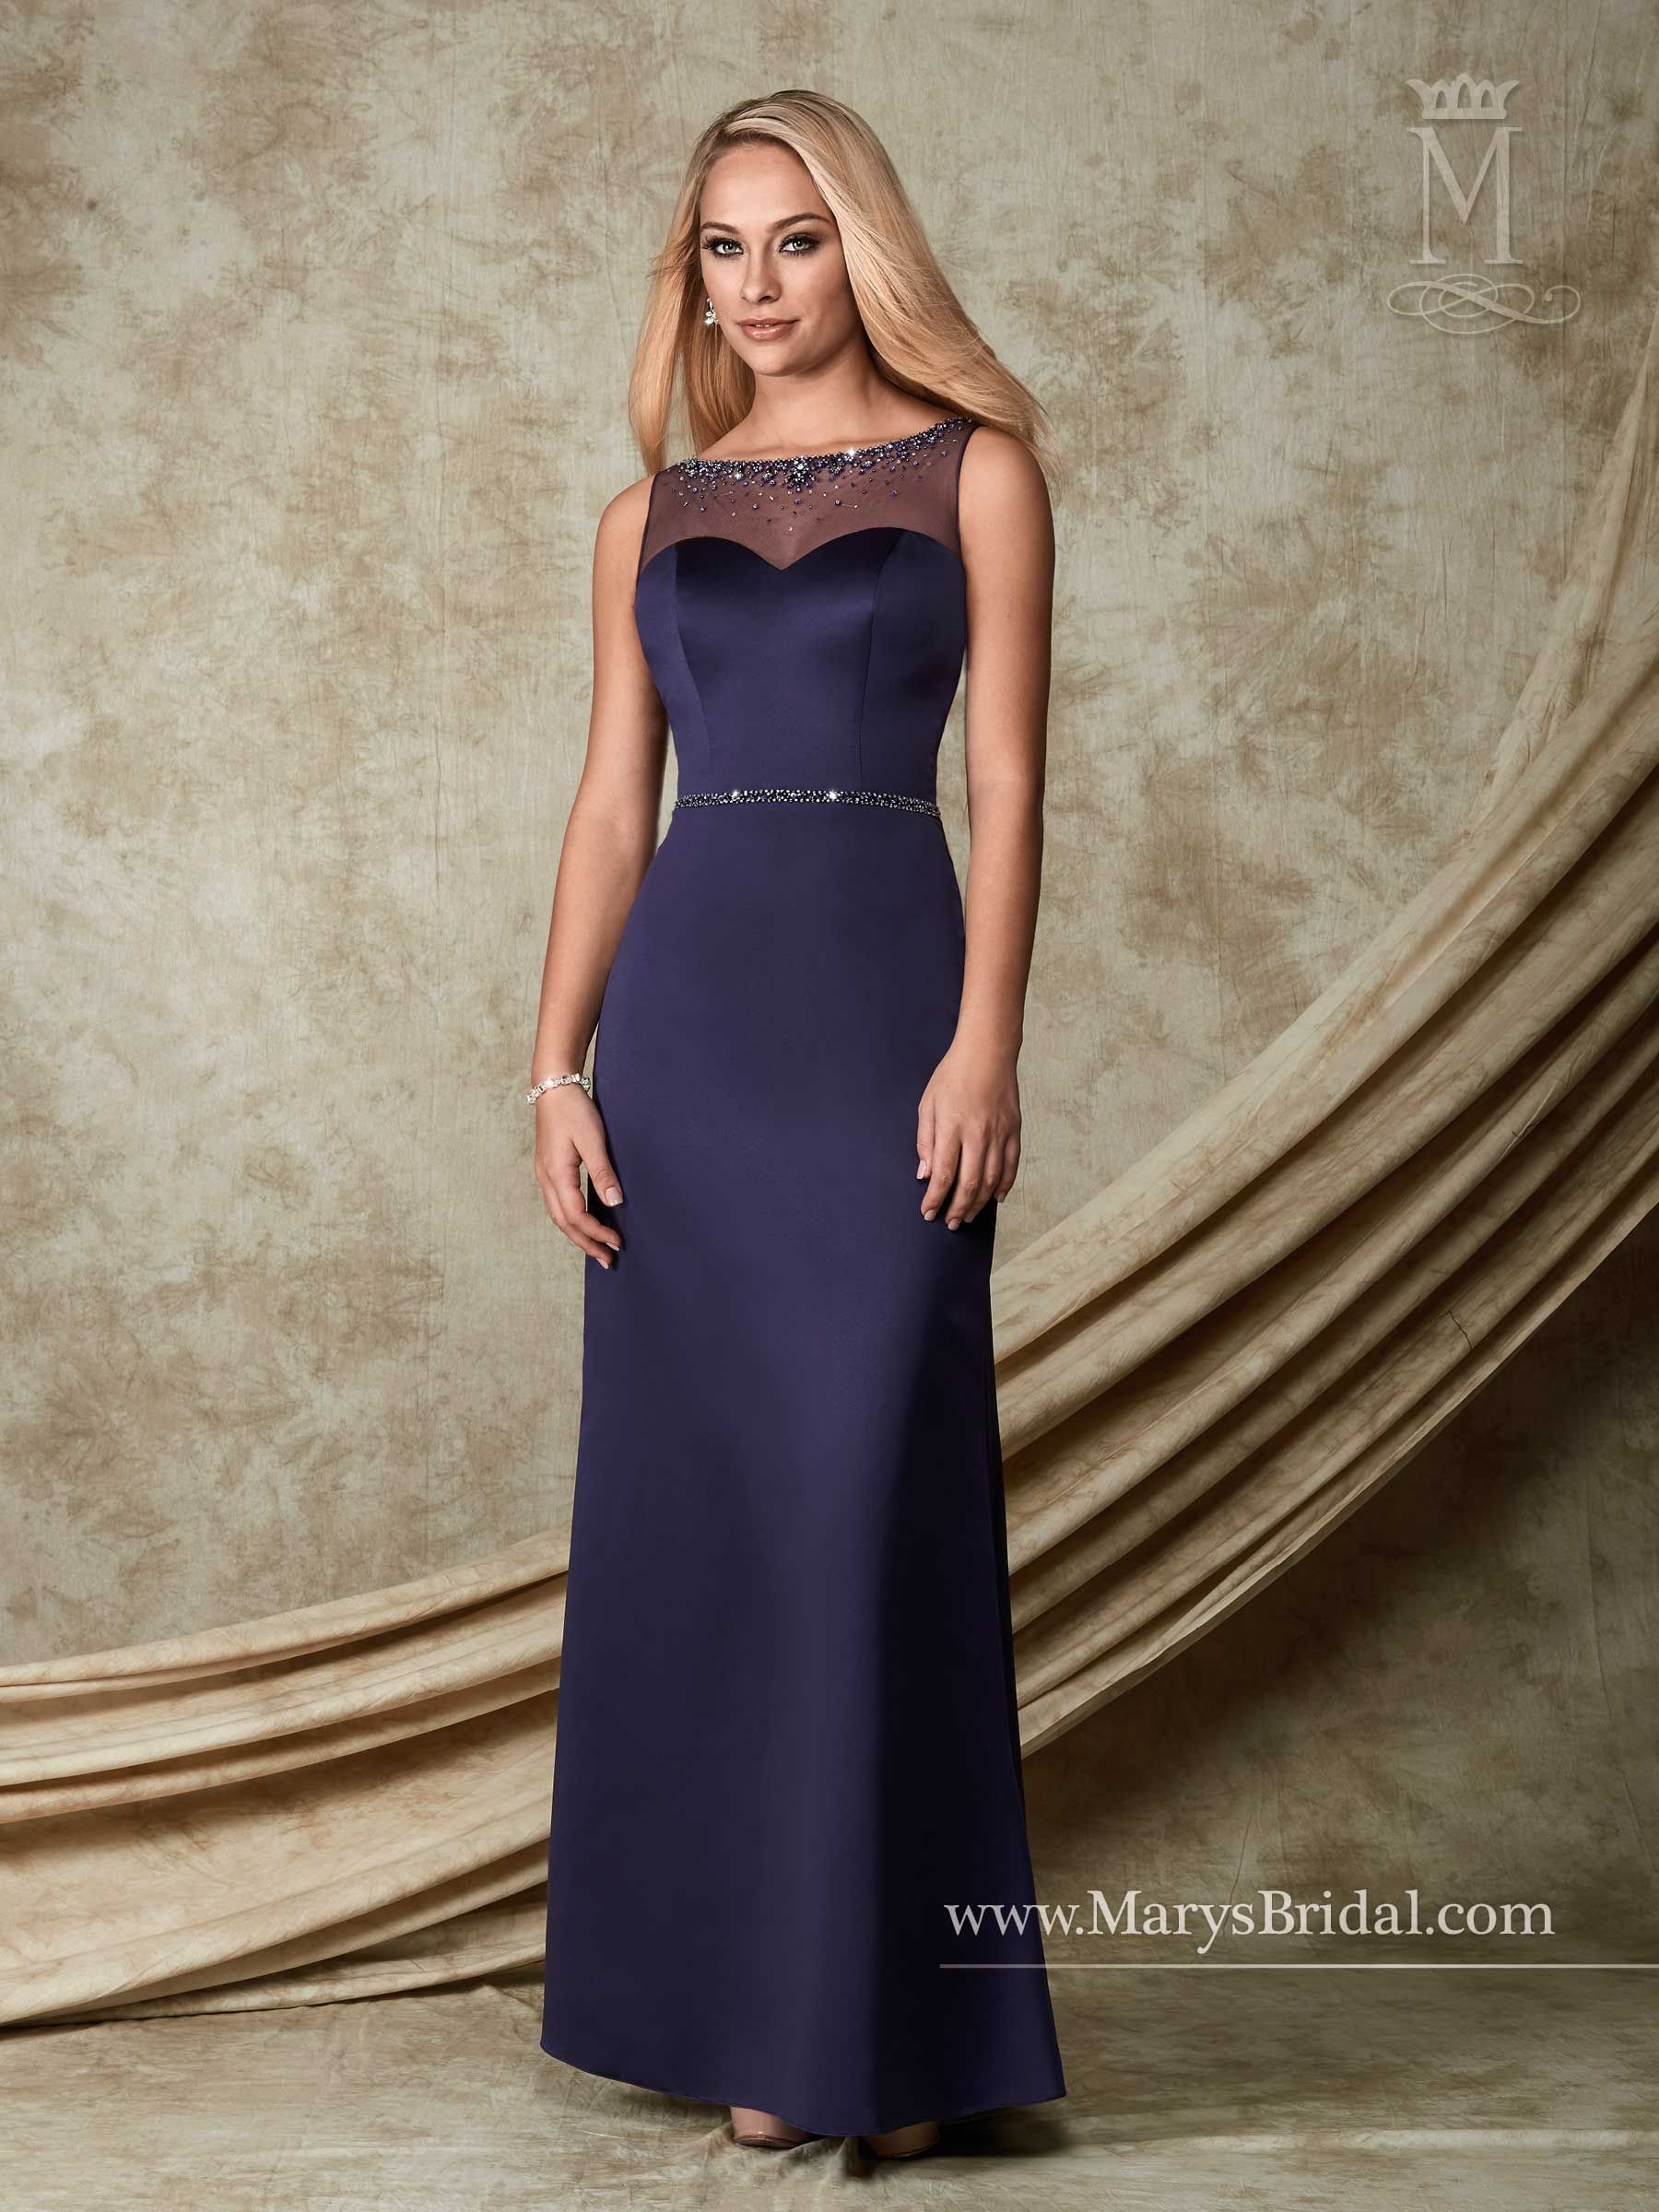 bridesmaids - modern maids - style: m1500mary's bridal gowns